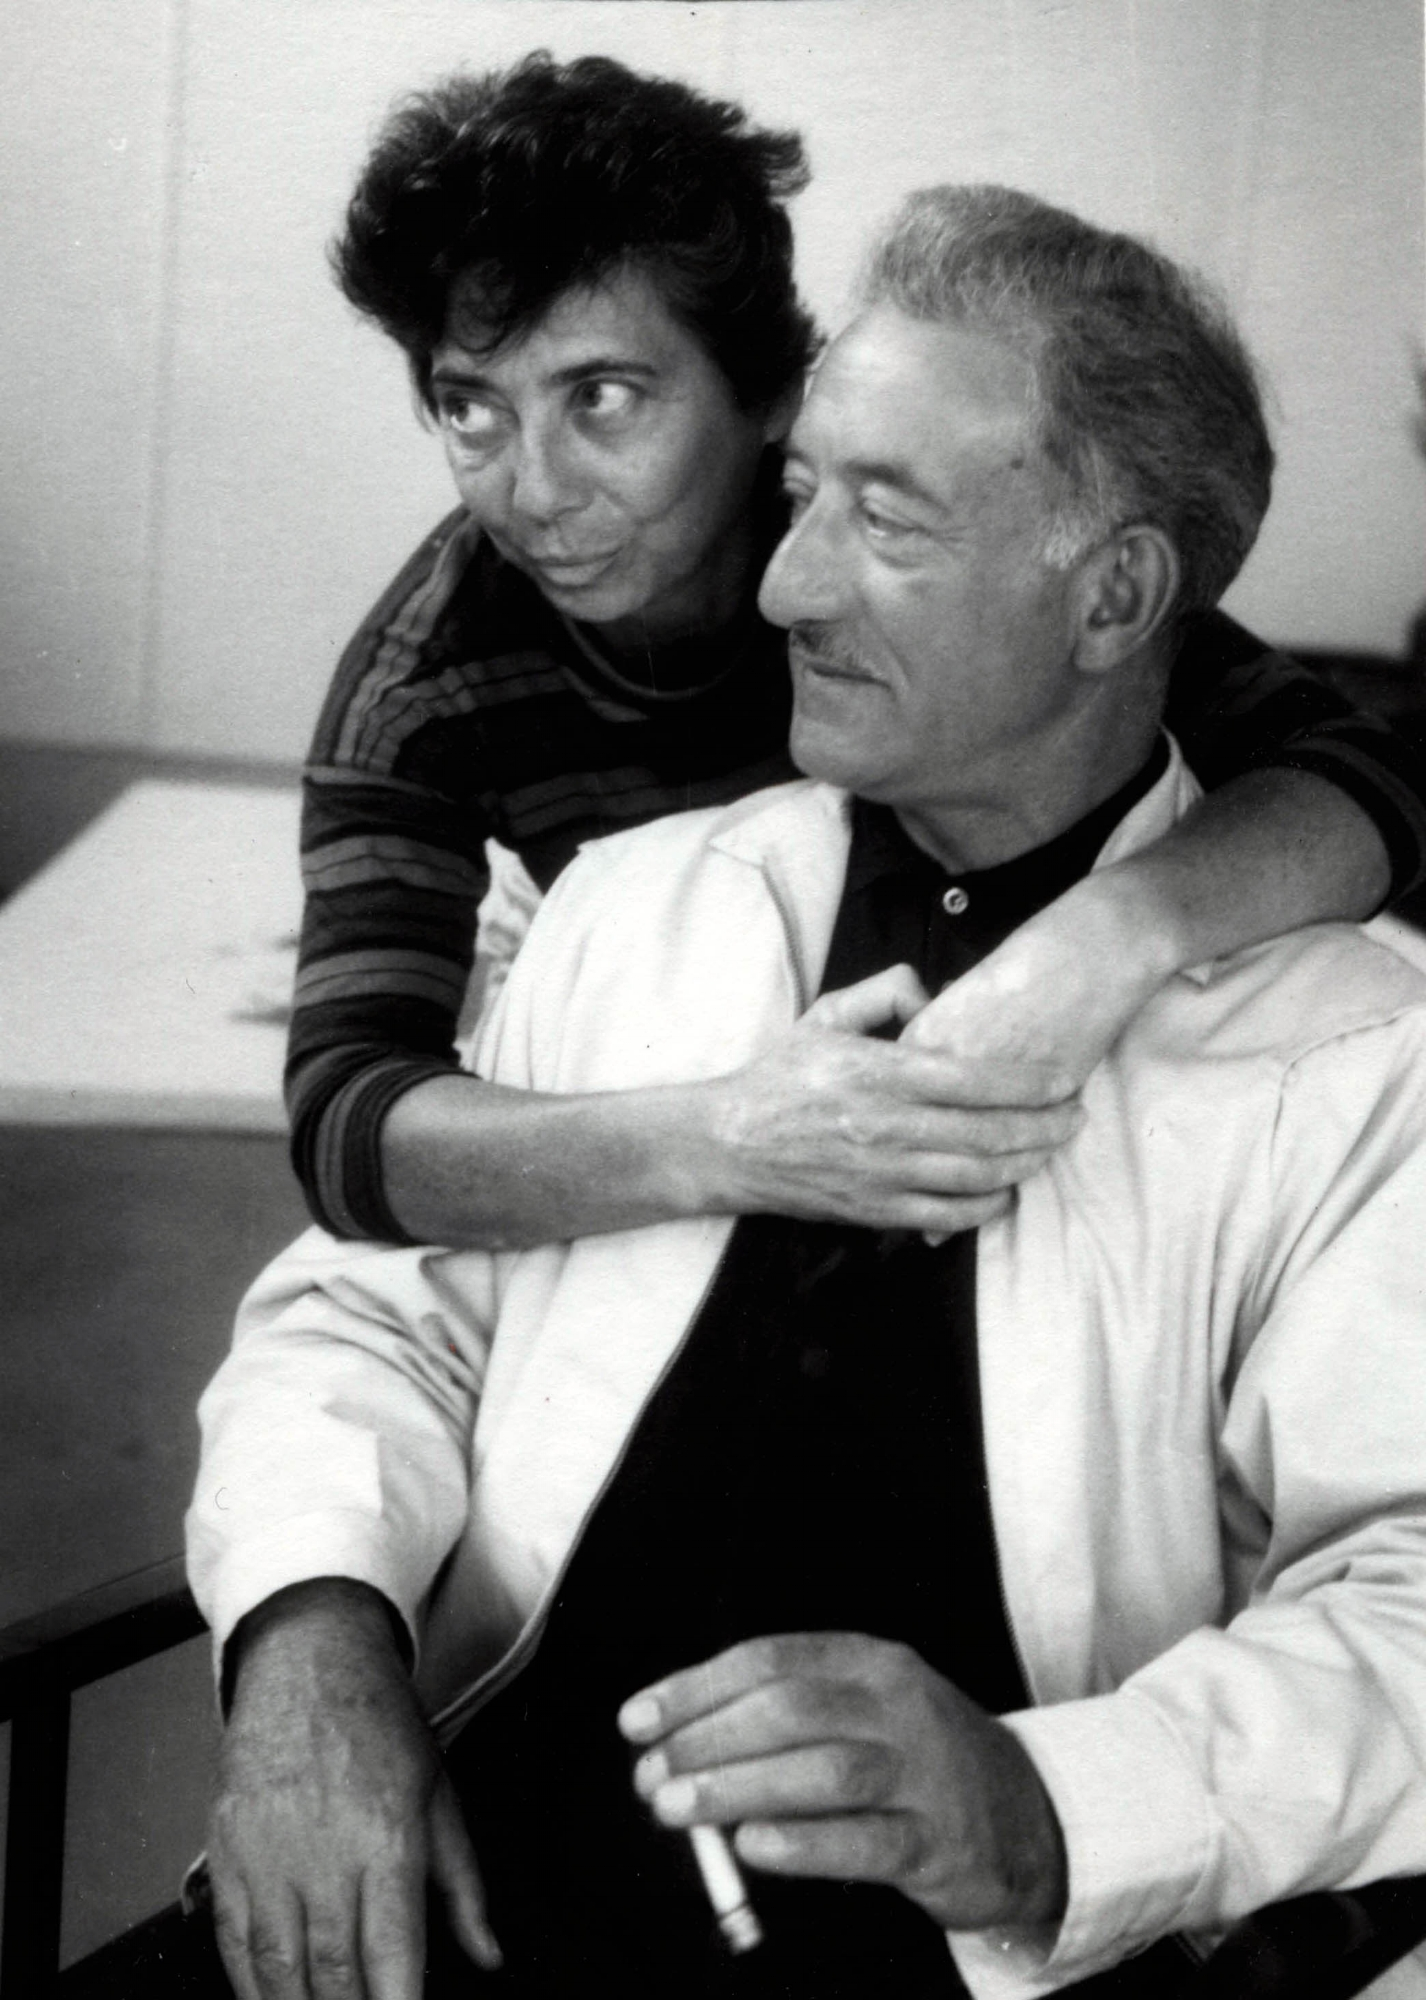 Esther and Adolph Gottlieb, c. 1963